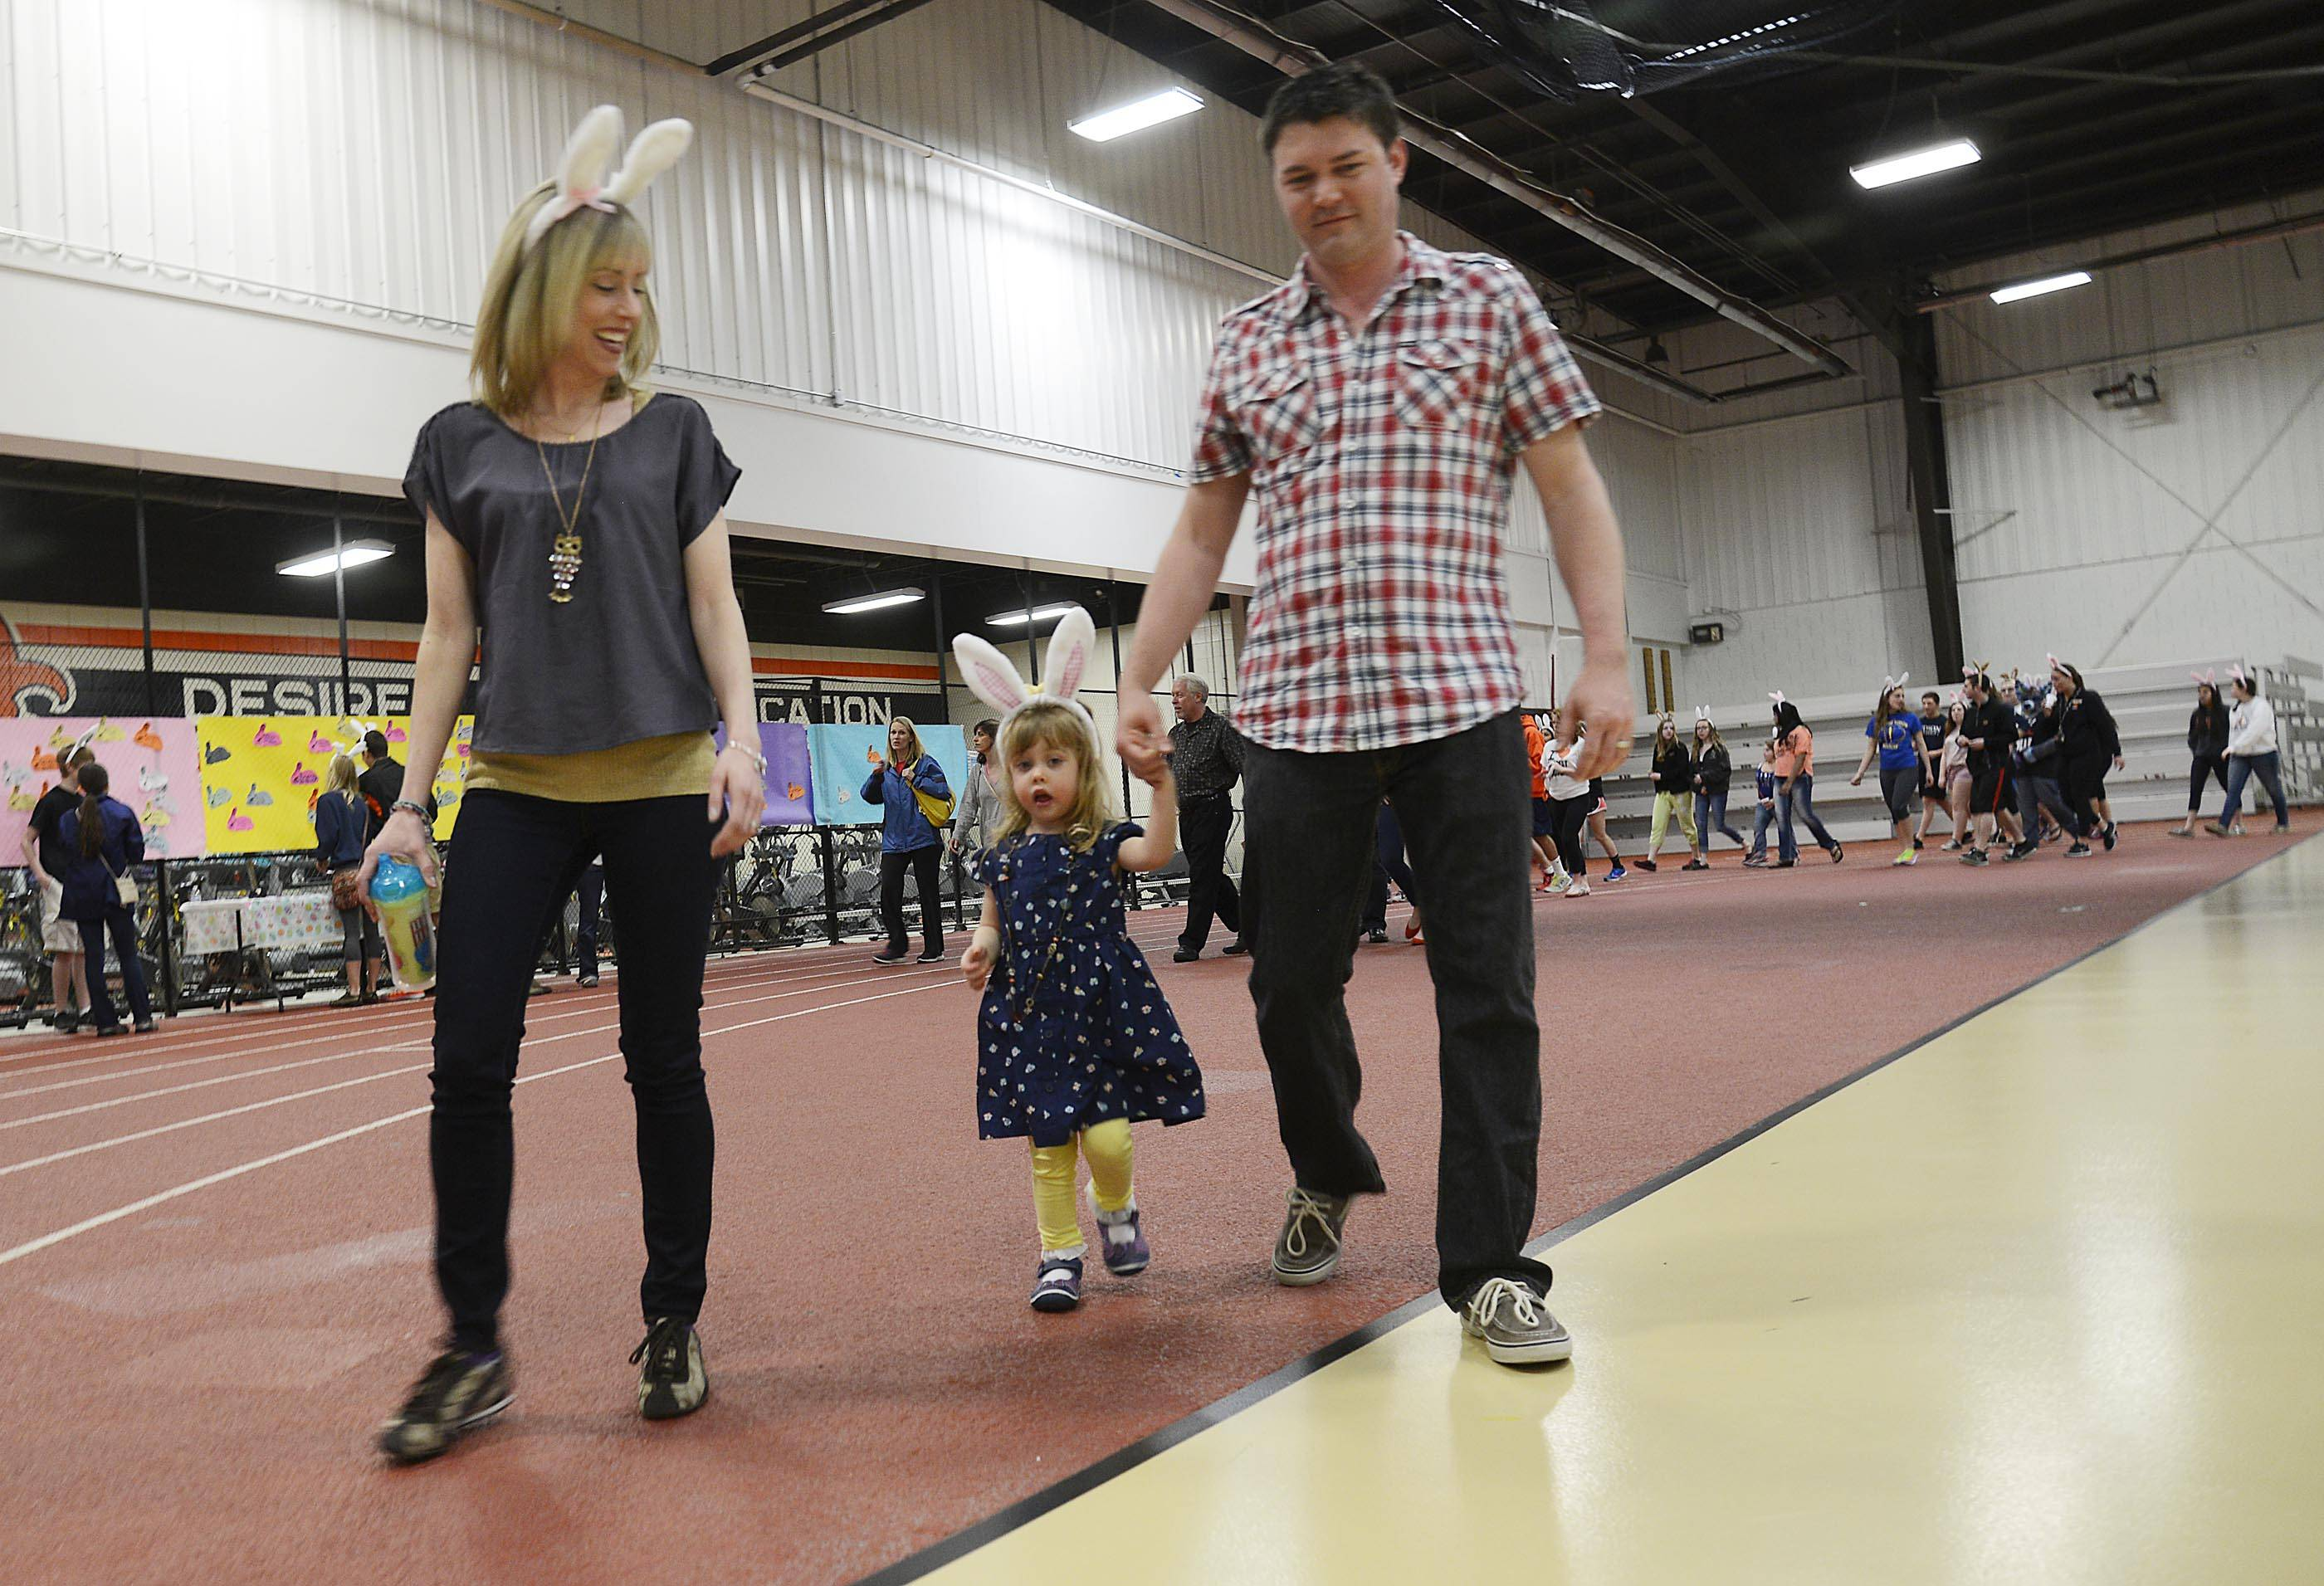 Caitlin Cox, almost 3, walks with her parents Meghan and Jeff during a Juvenile Arthritis benefit walk organized by the St. Charles East High School student council Sunday at the school's Sports Center. She was diagnosed with juvenile arthritis last September. They are from St. Charles.